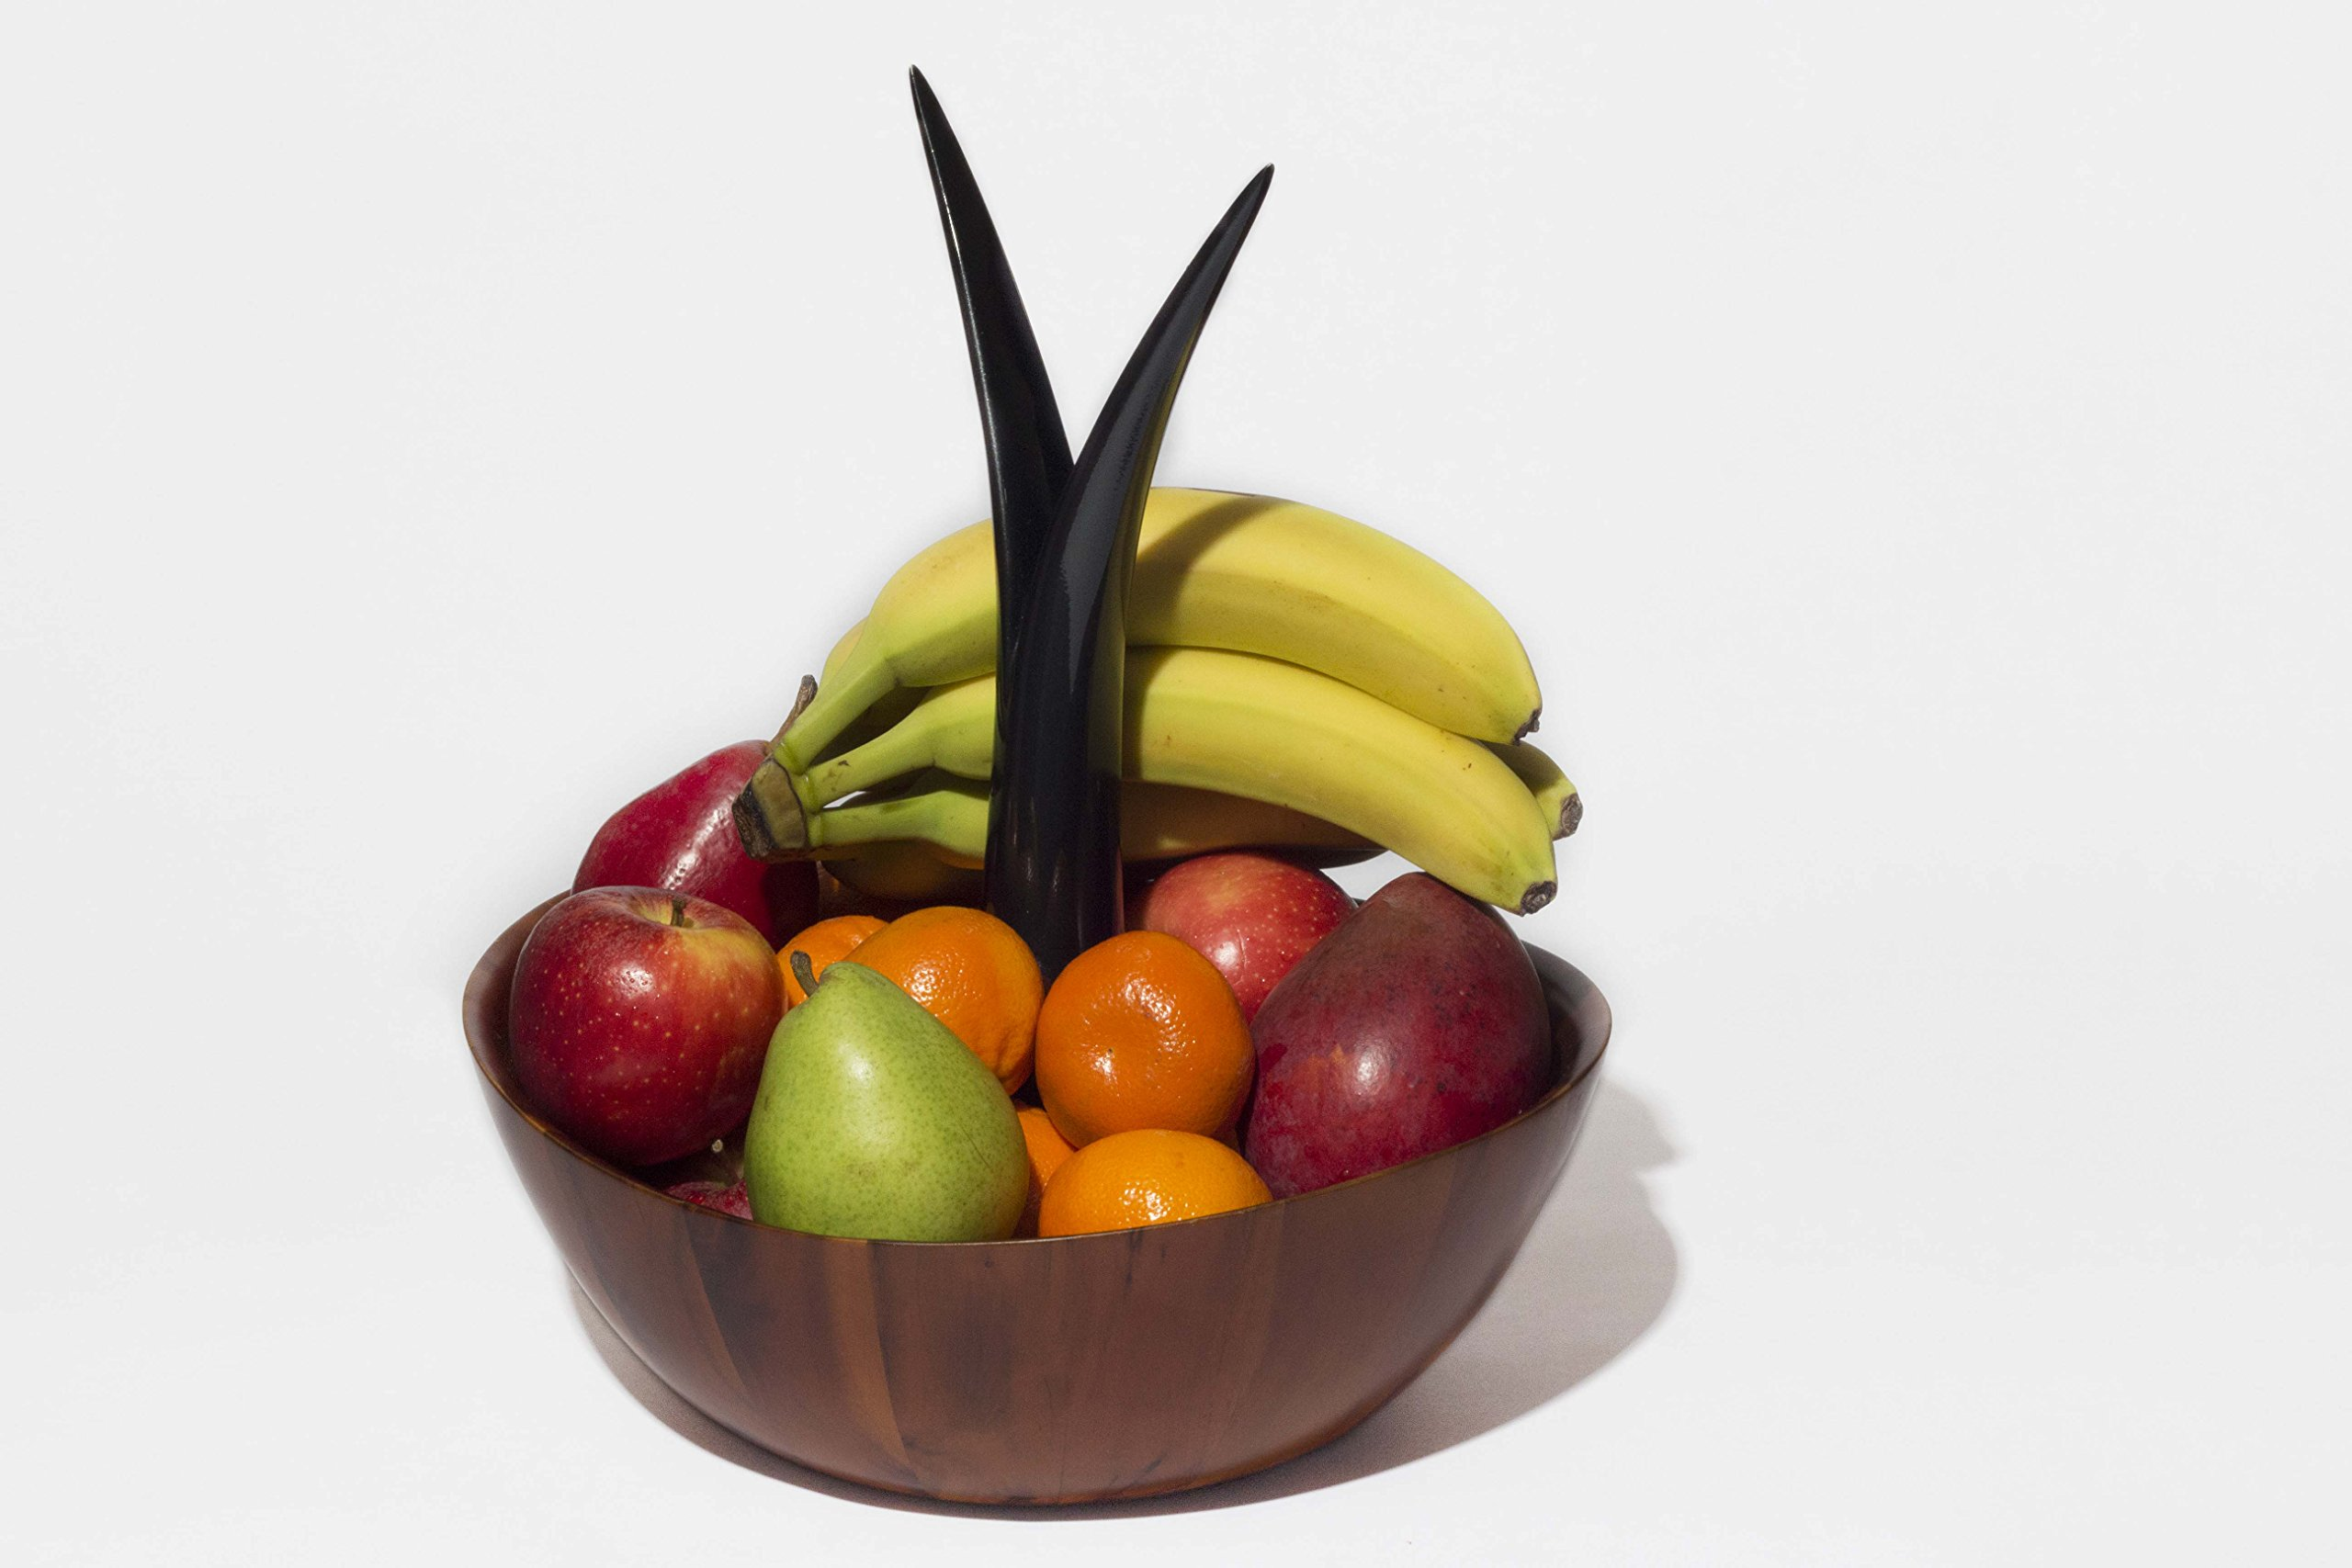 Acacia Fruit Bowl with Bananna Hanger. 12 x 5in.